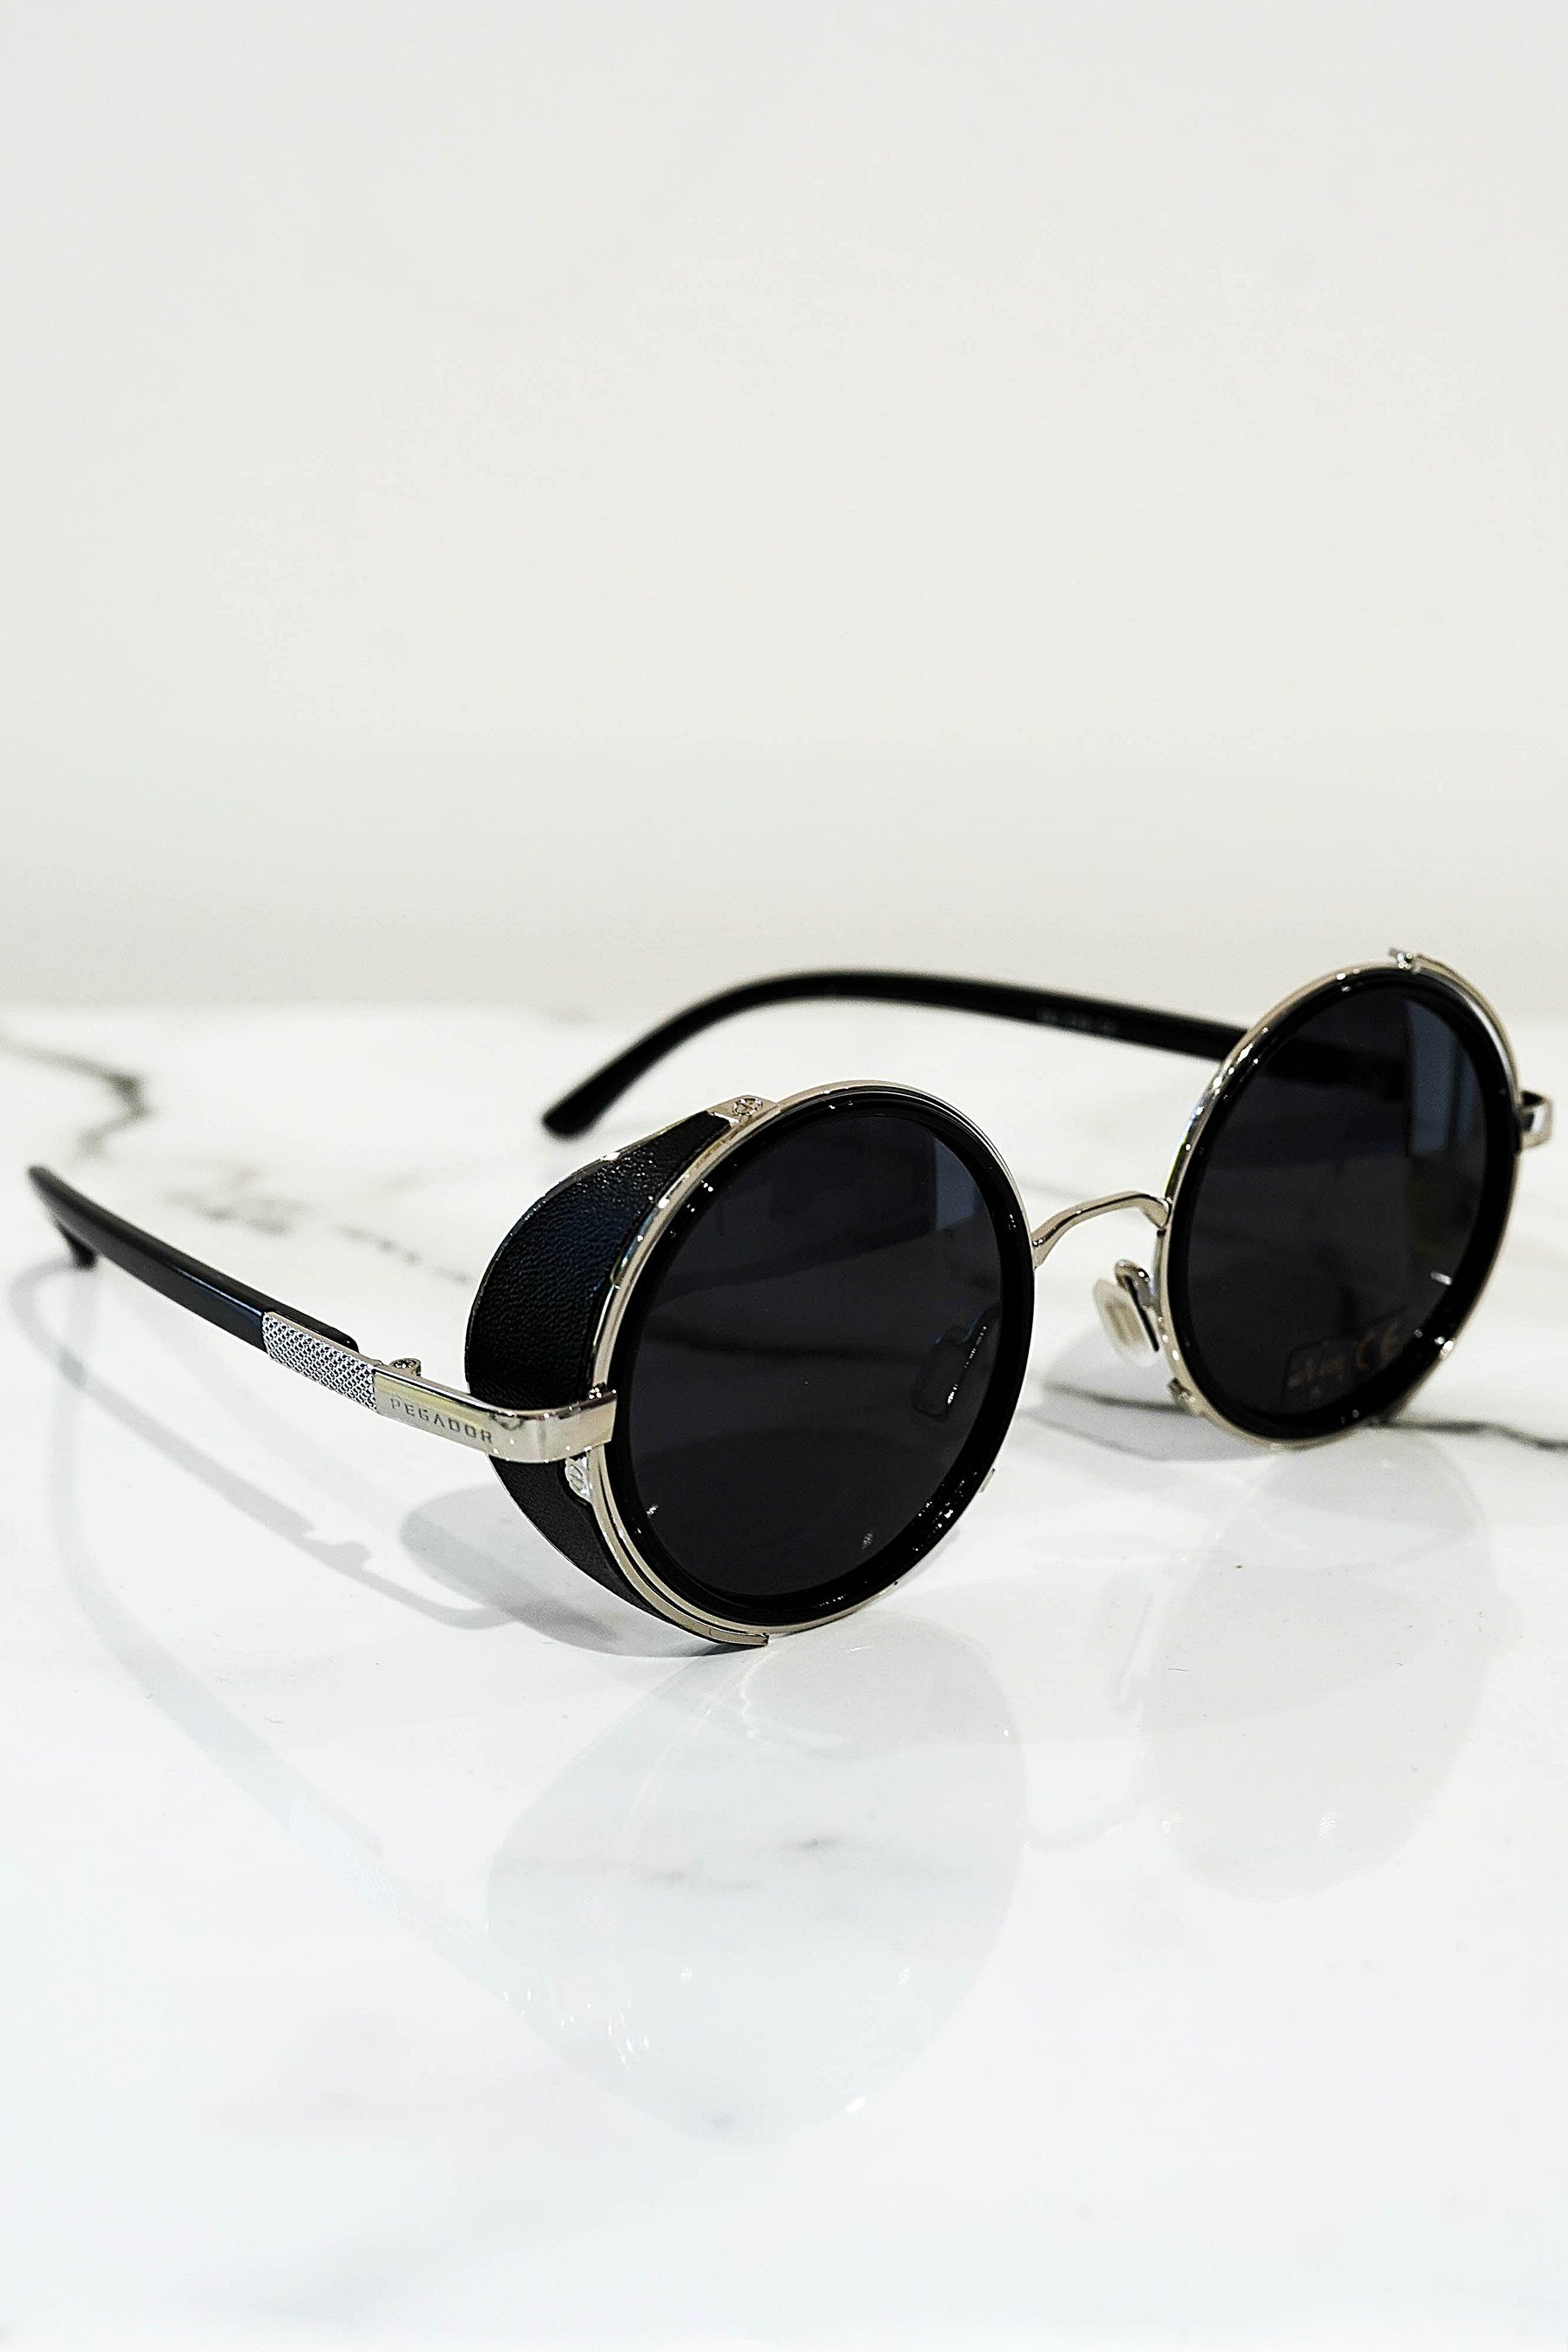 Steampunk sunglasses silver With dark lens - PEGADOR - Dominate the Hype